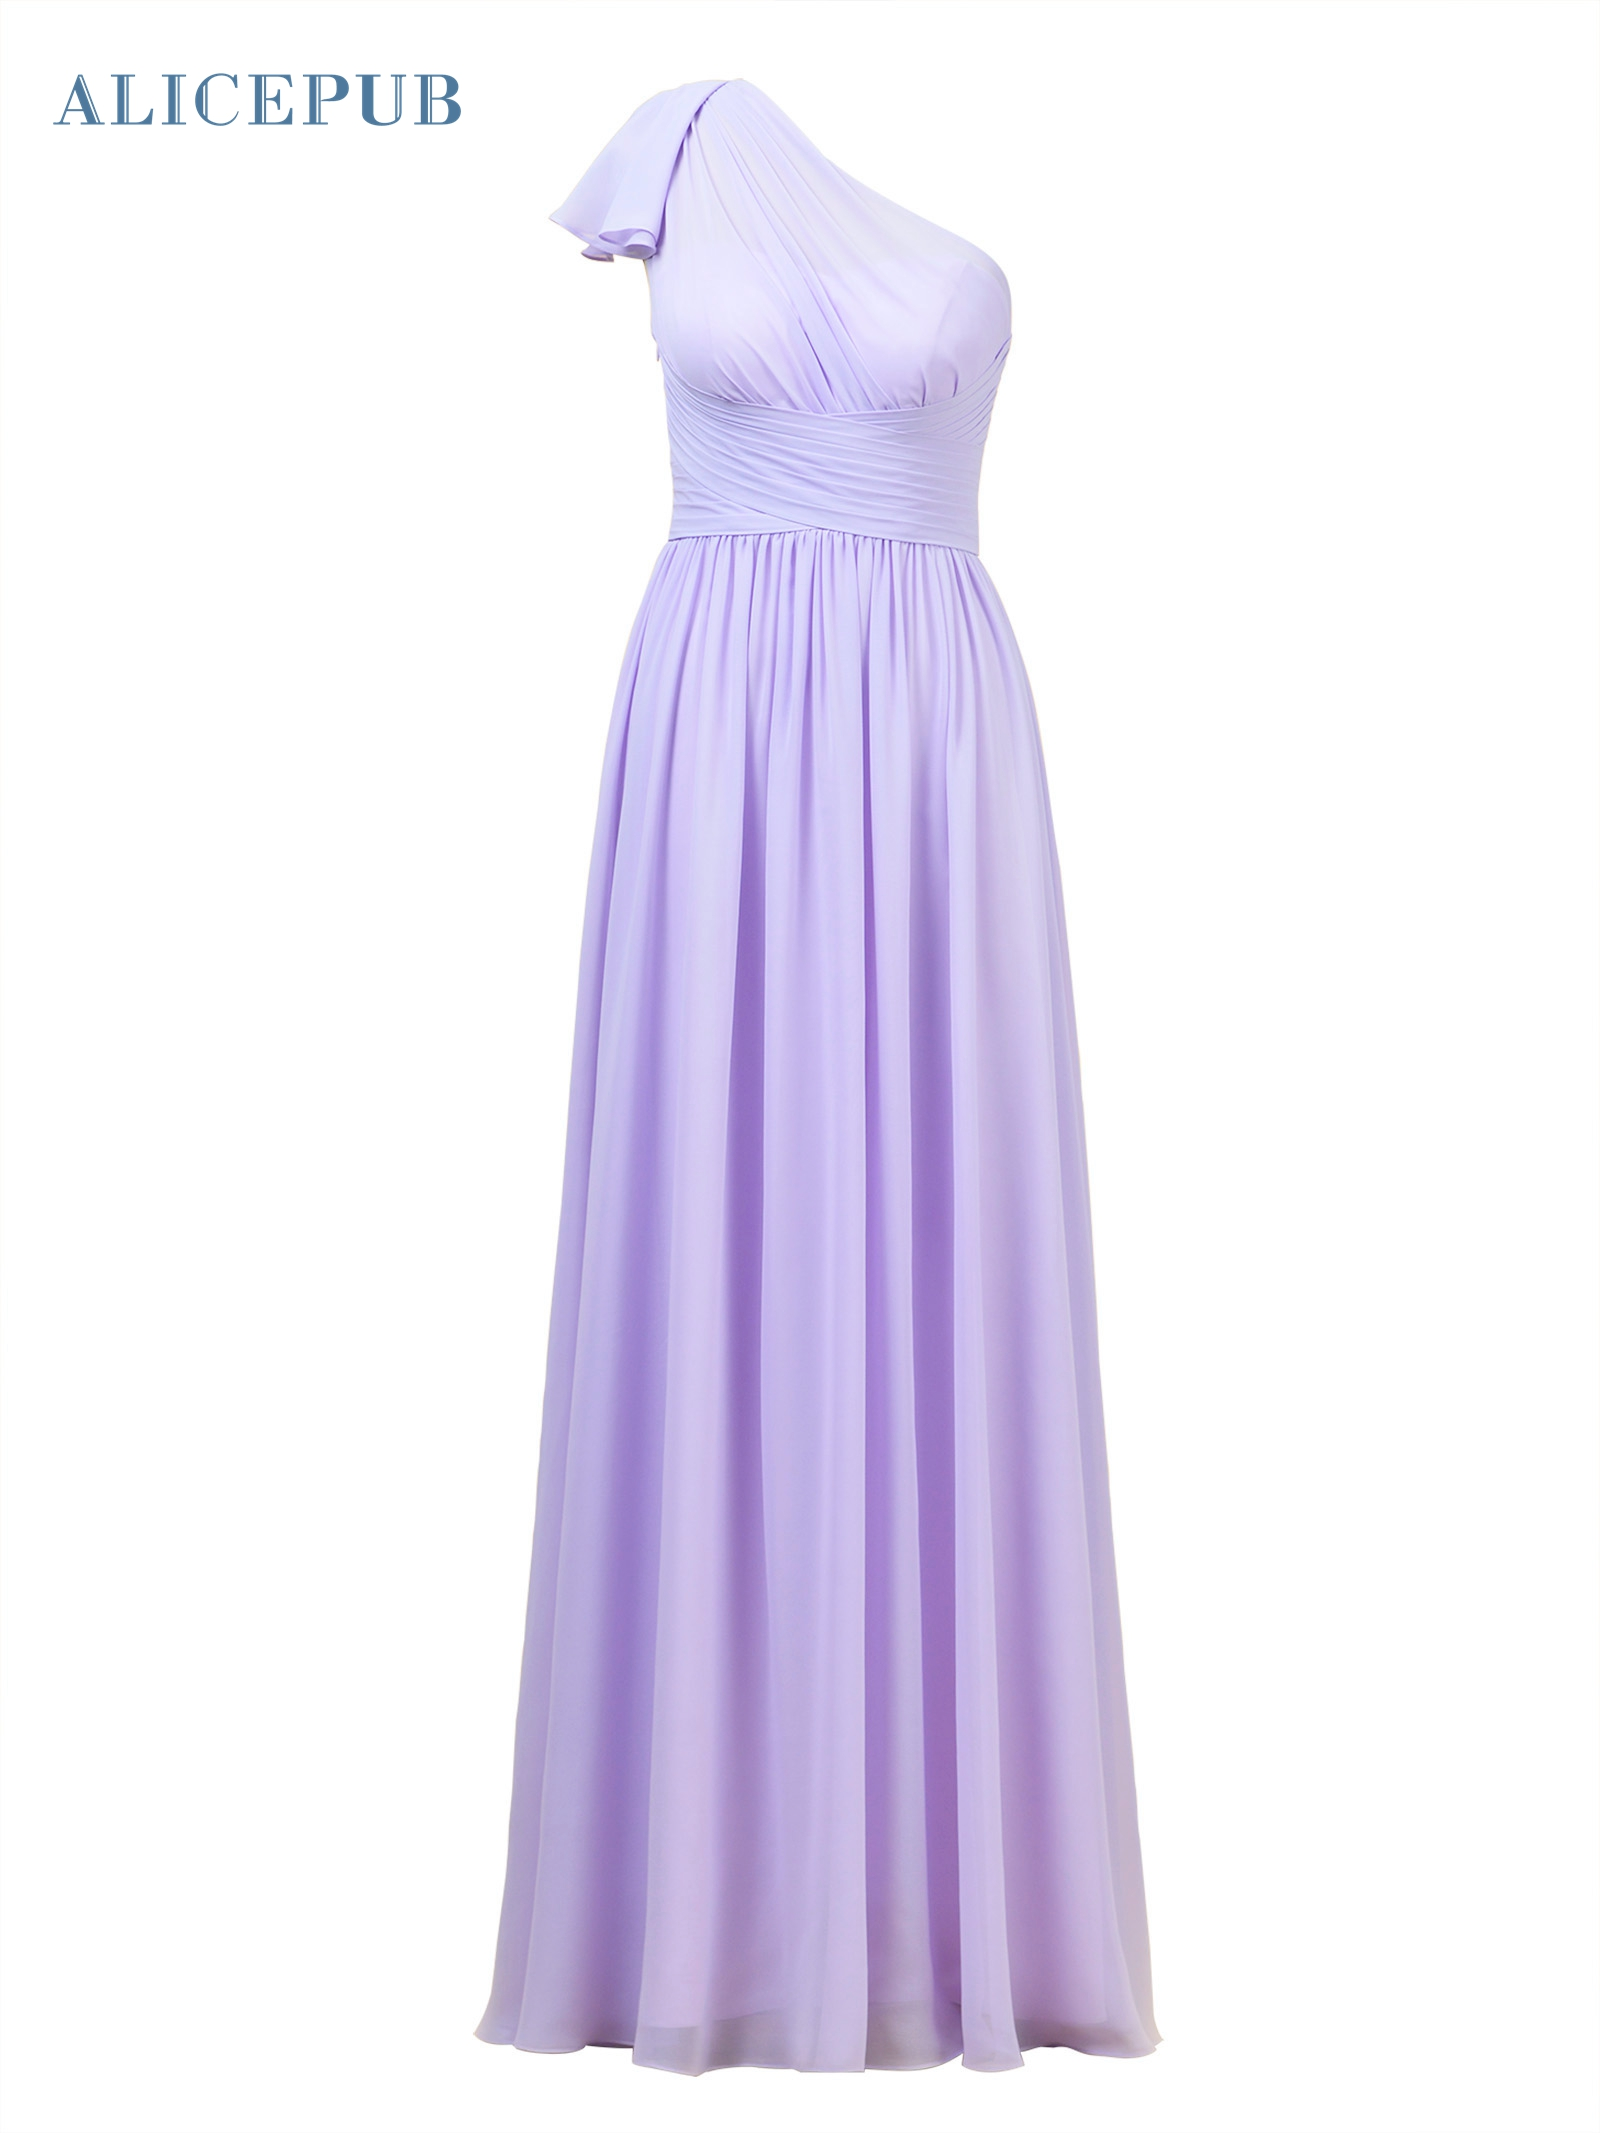 973e7a7a3 Alicepub One Shoulder Bridesmaid Dress for Women Long Evening Party Gown  Maxi Special Occasion